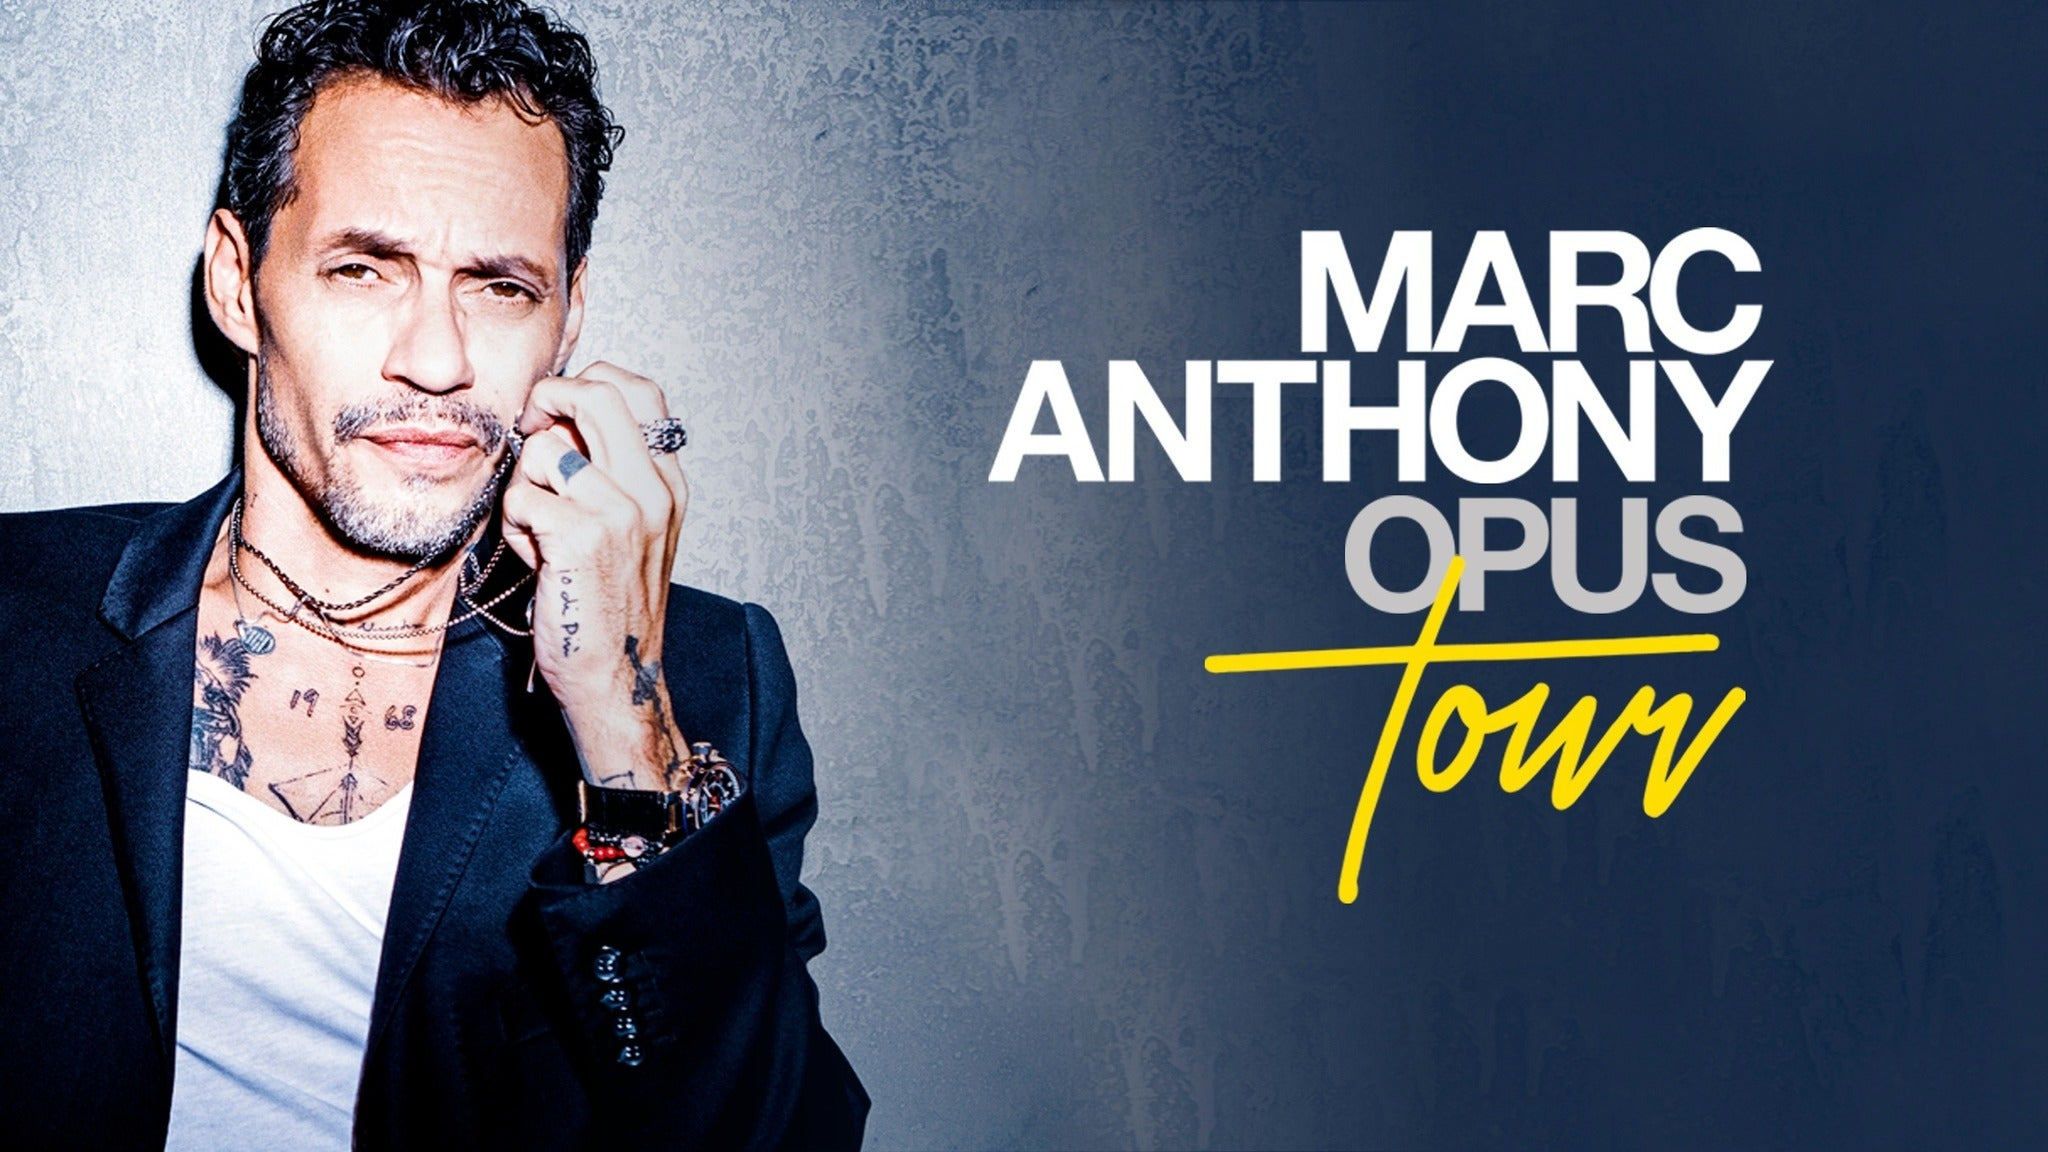 Opus Tour 2020: Marc Anthony at H-E-B Center at Cedar Park